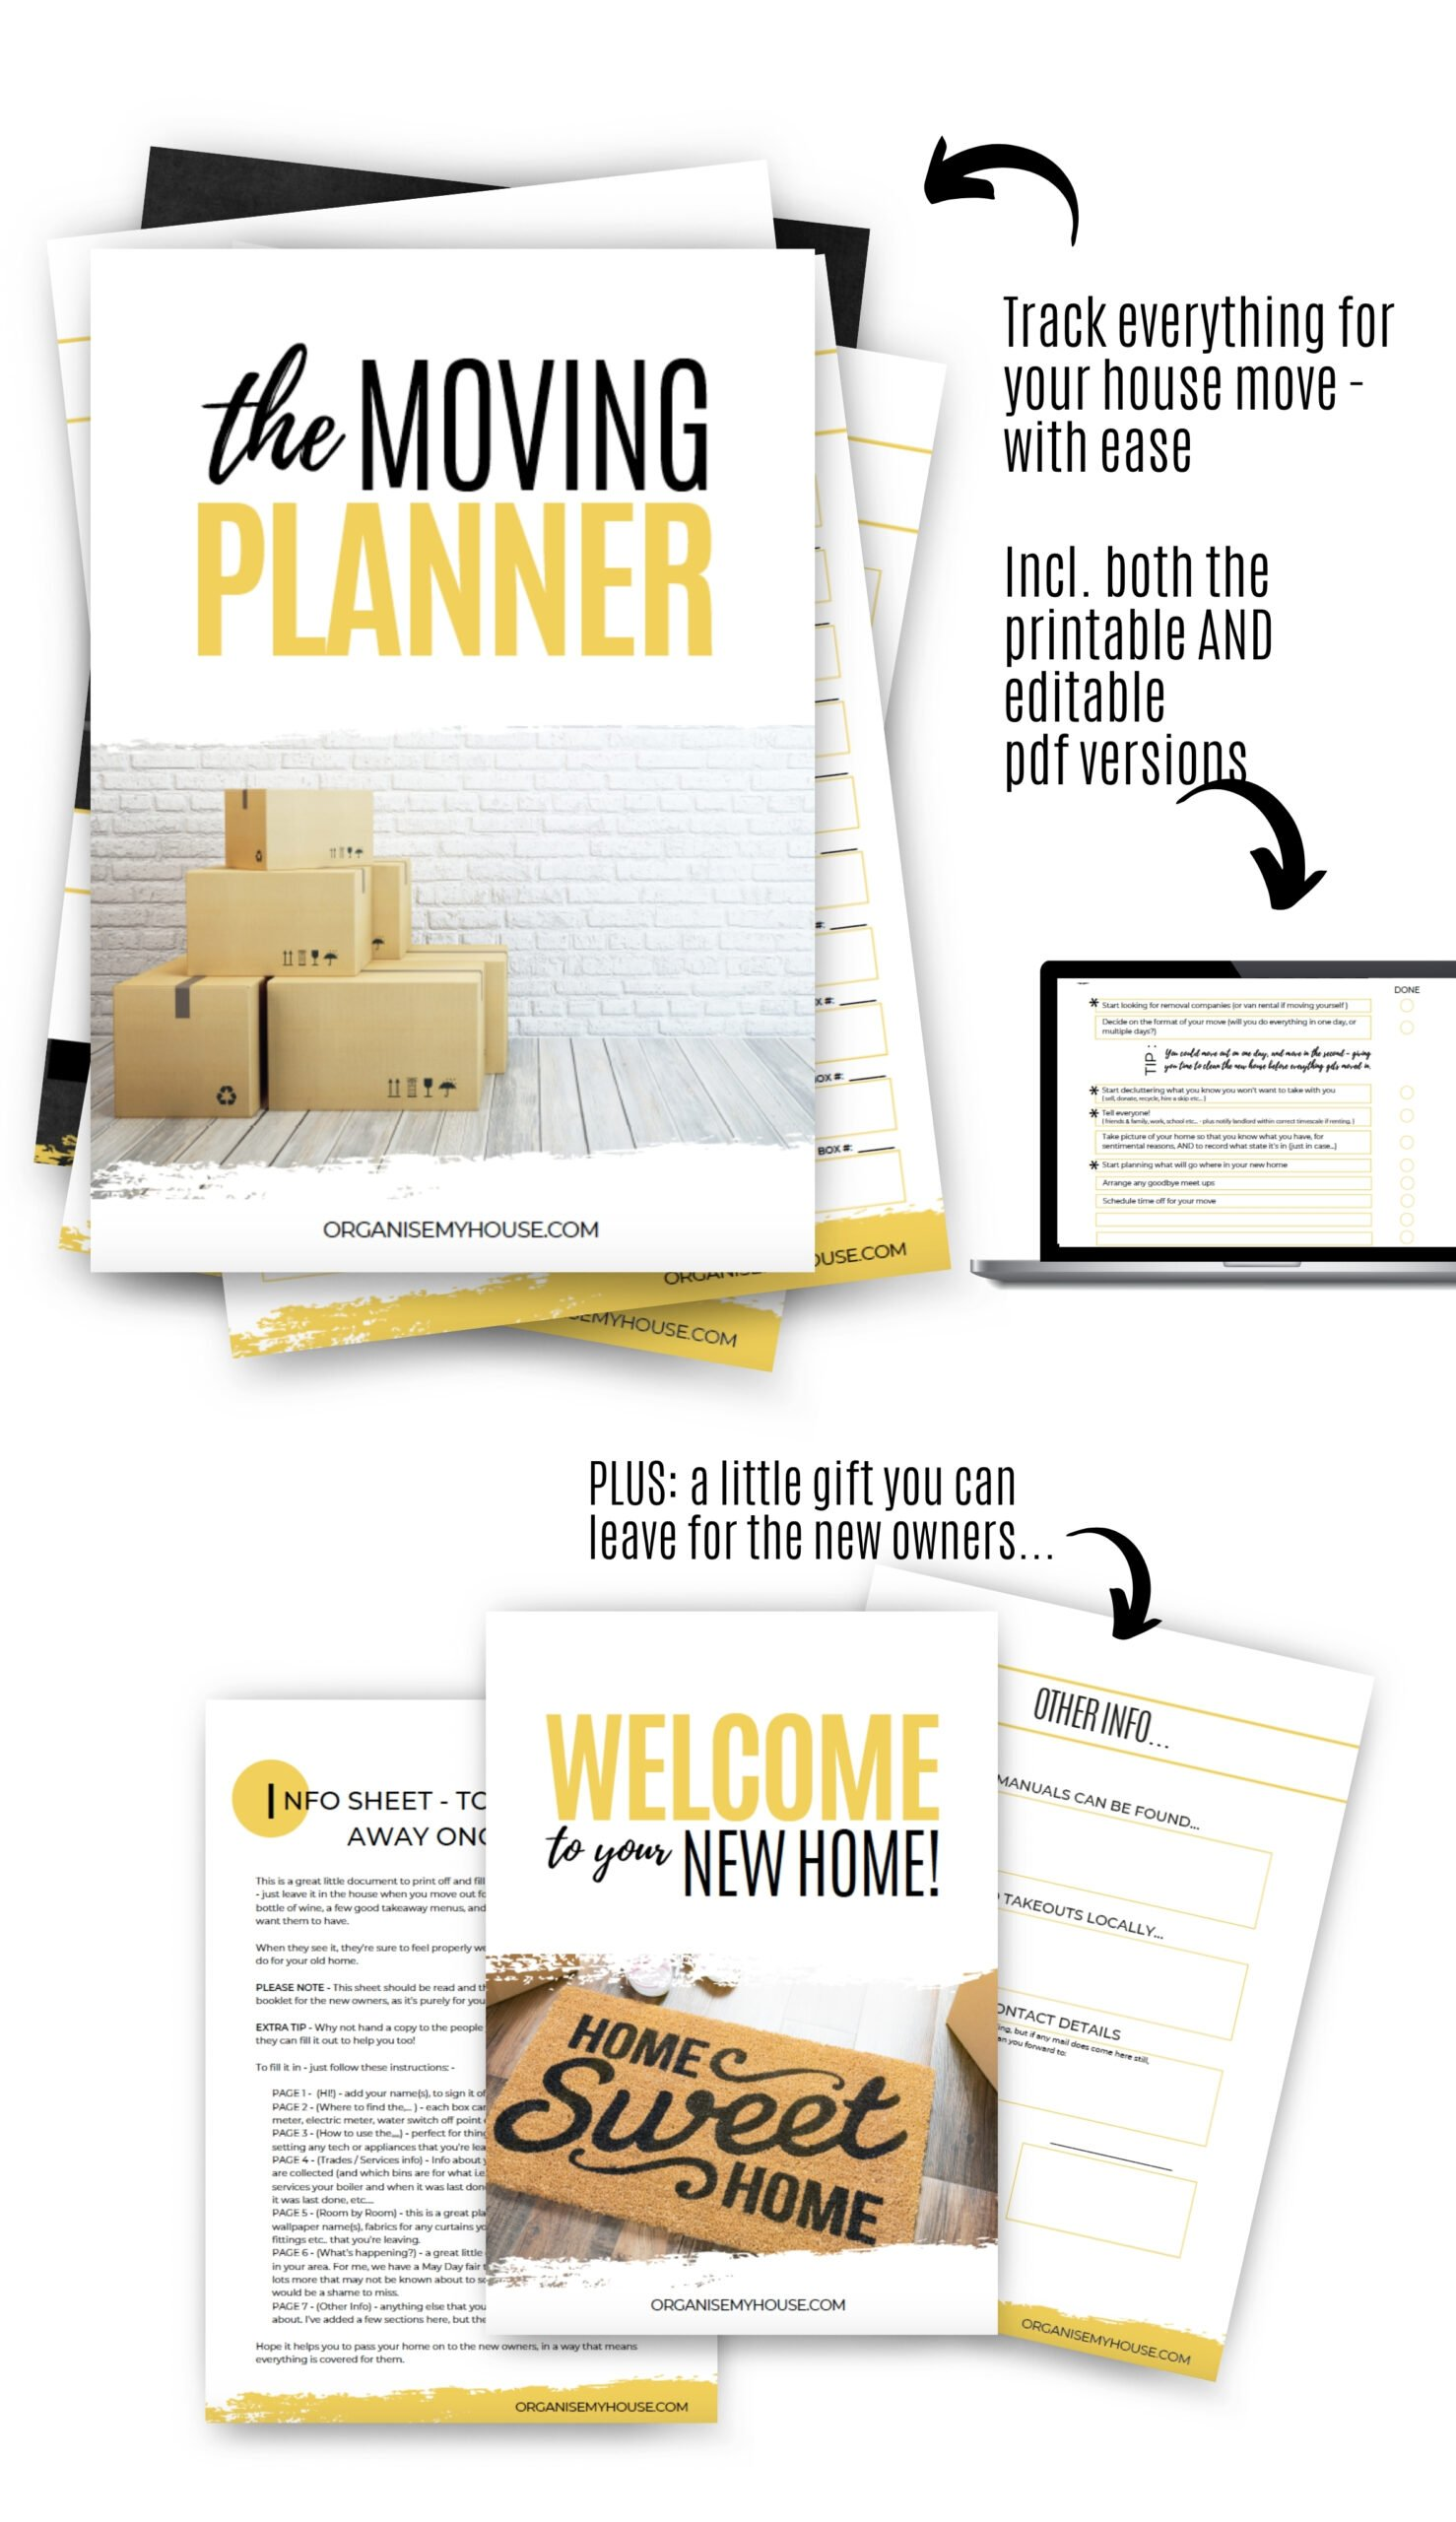 The Moving Planner - Making Moving House easier